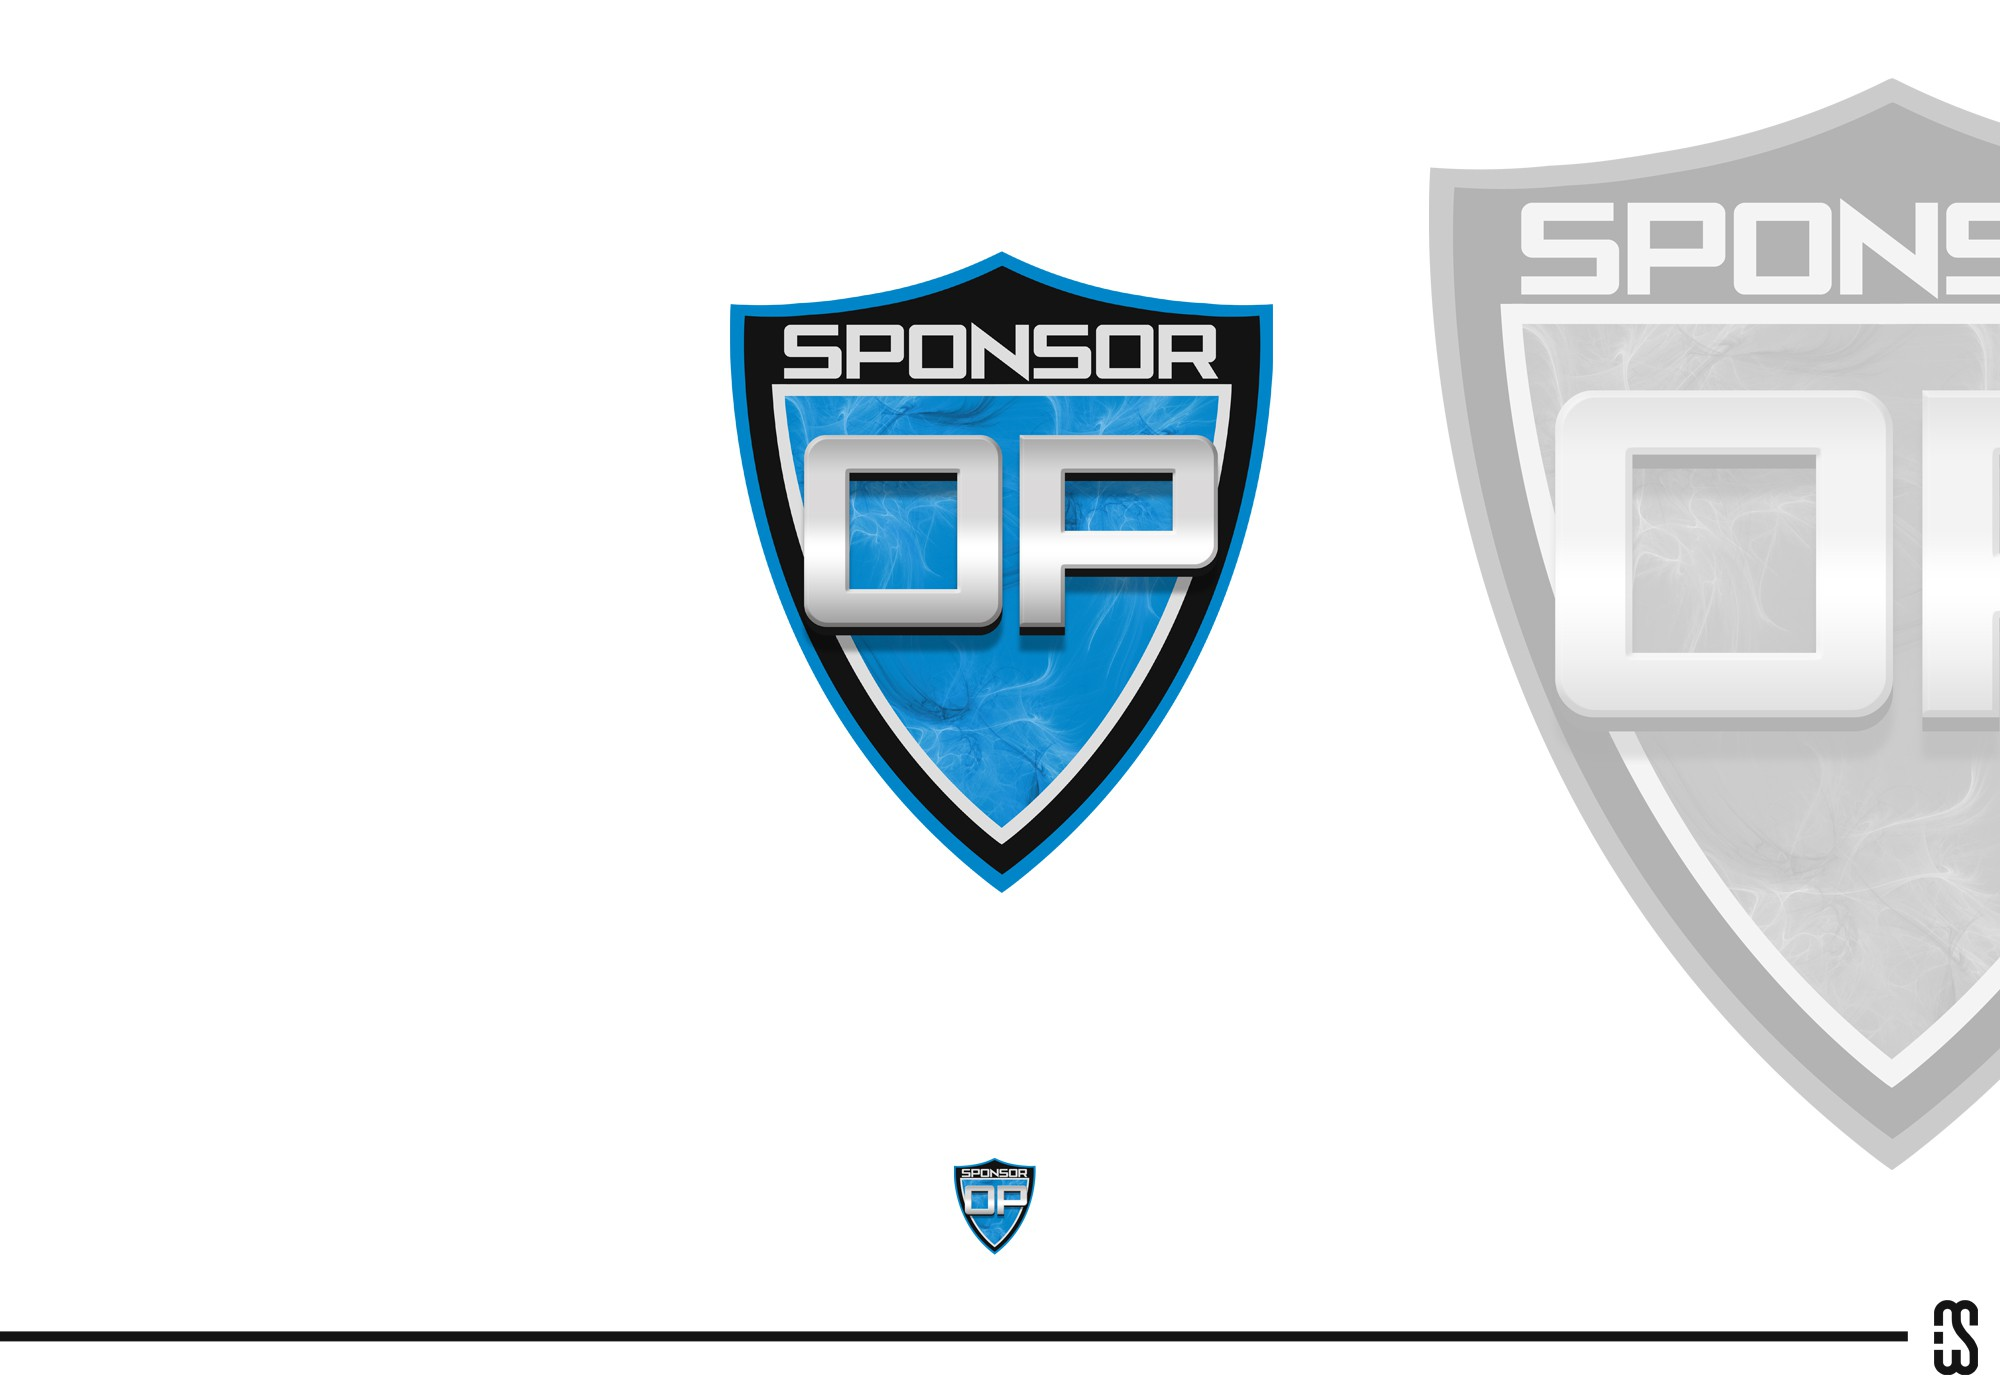 Pro-Gaming company needs an awesome logo for SponsorOP!